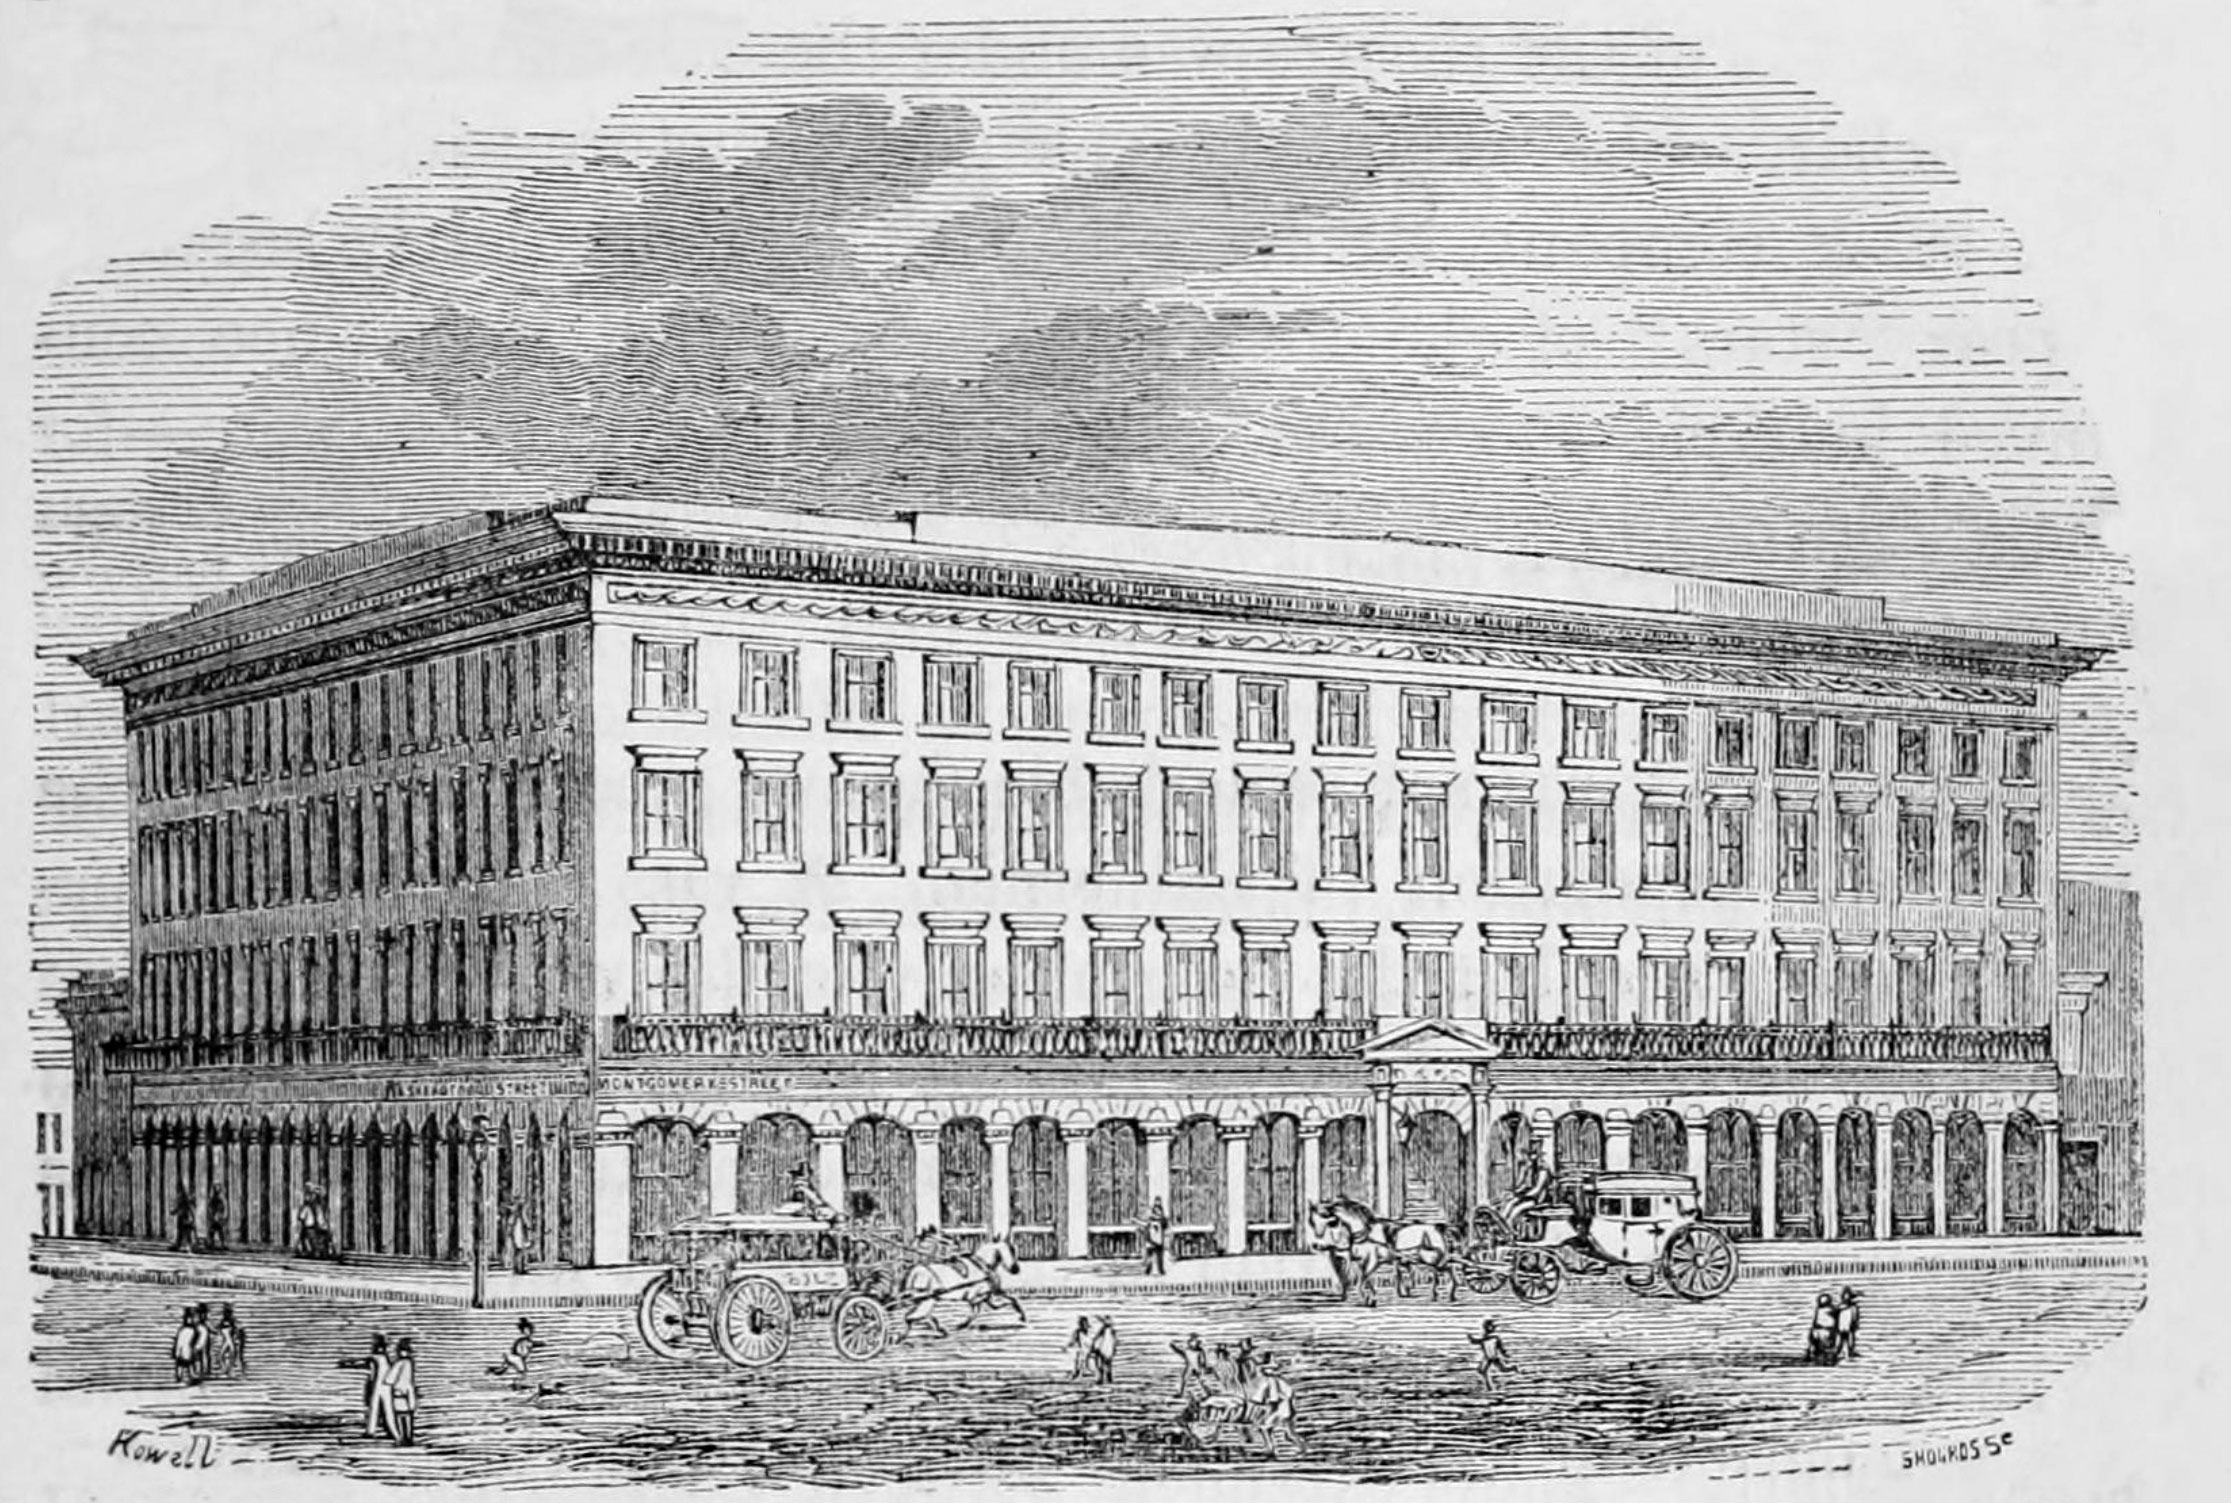 Image credit: Annals of San Francisco, 1855